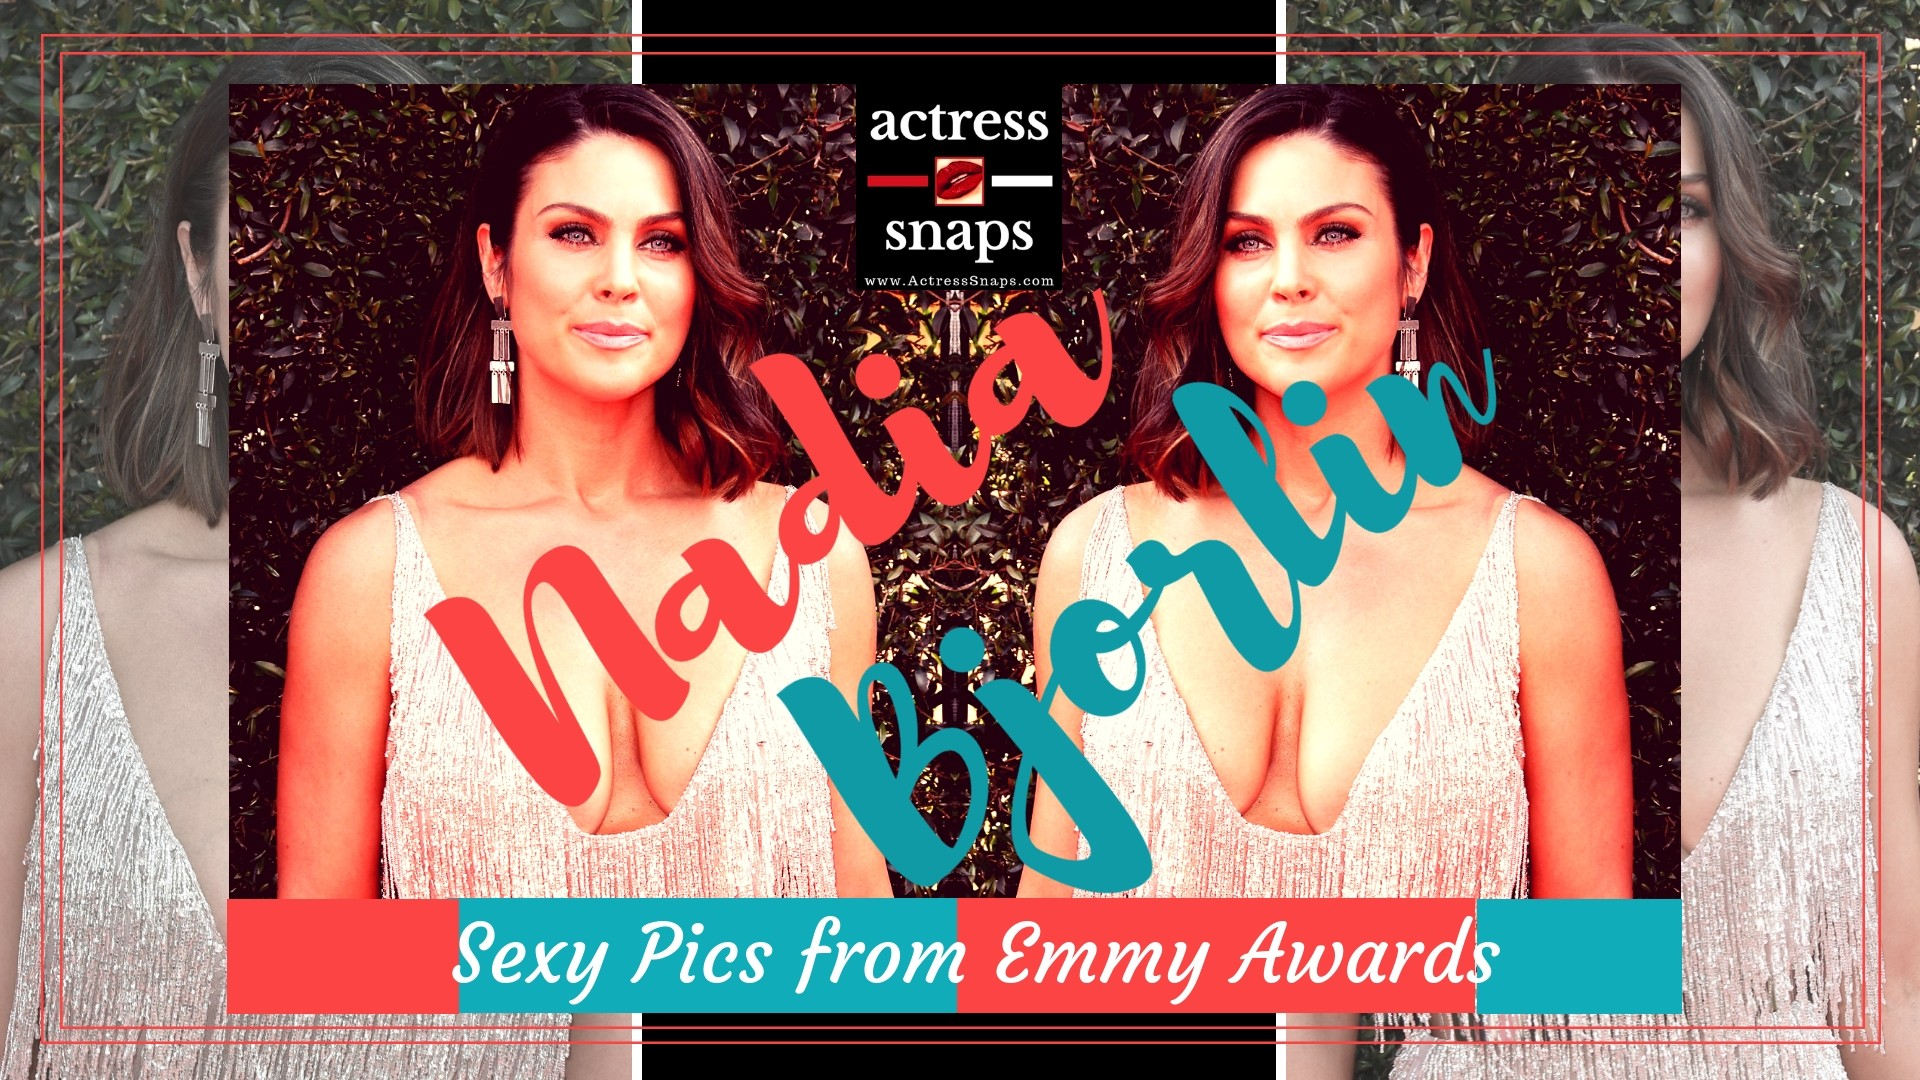 Nadia Bjorlin attending  Emmy Awards - Sexy Actress Pictures | Hot Actress Pictures - ActressSnaps.com